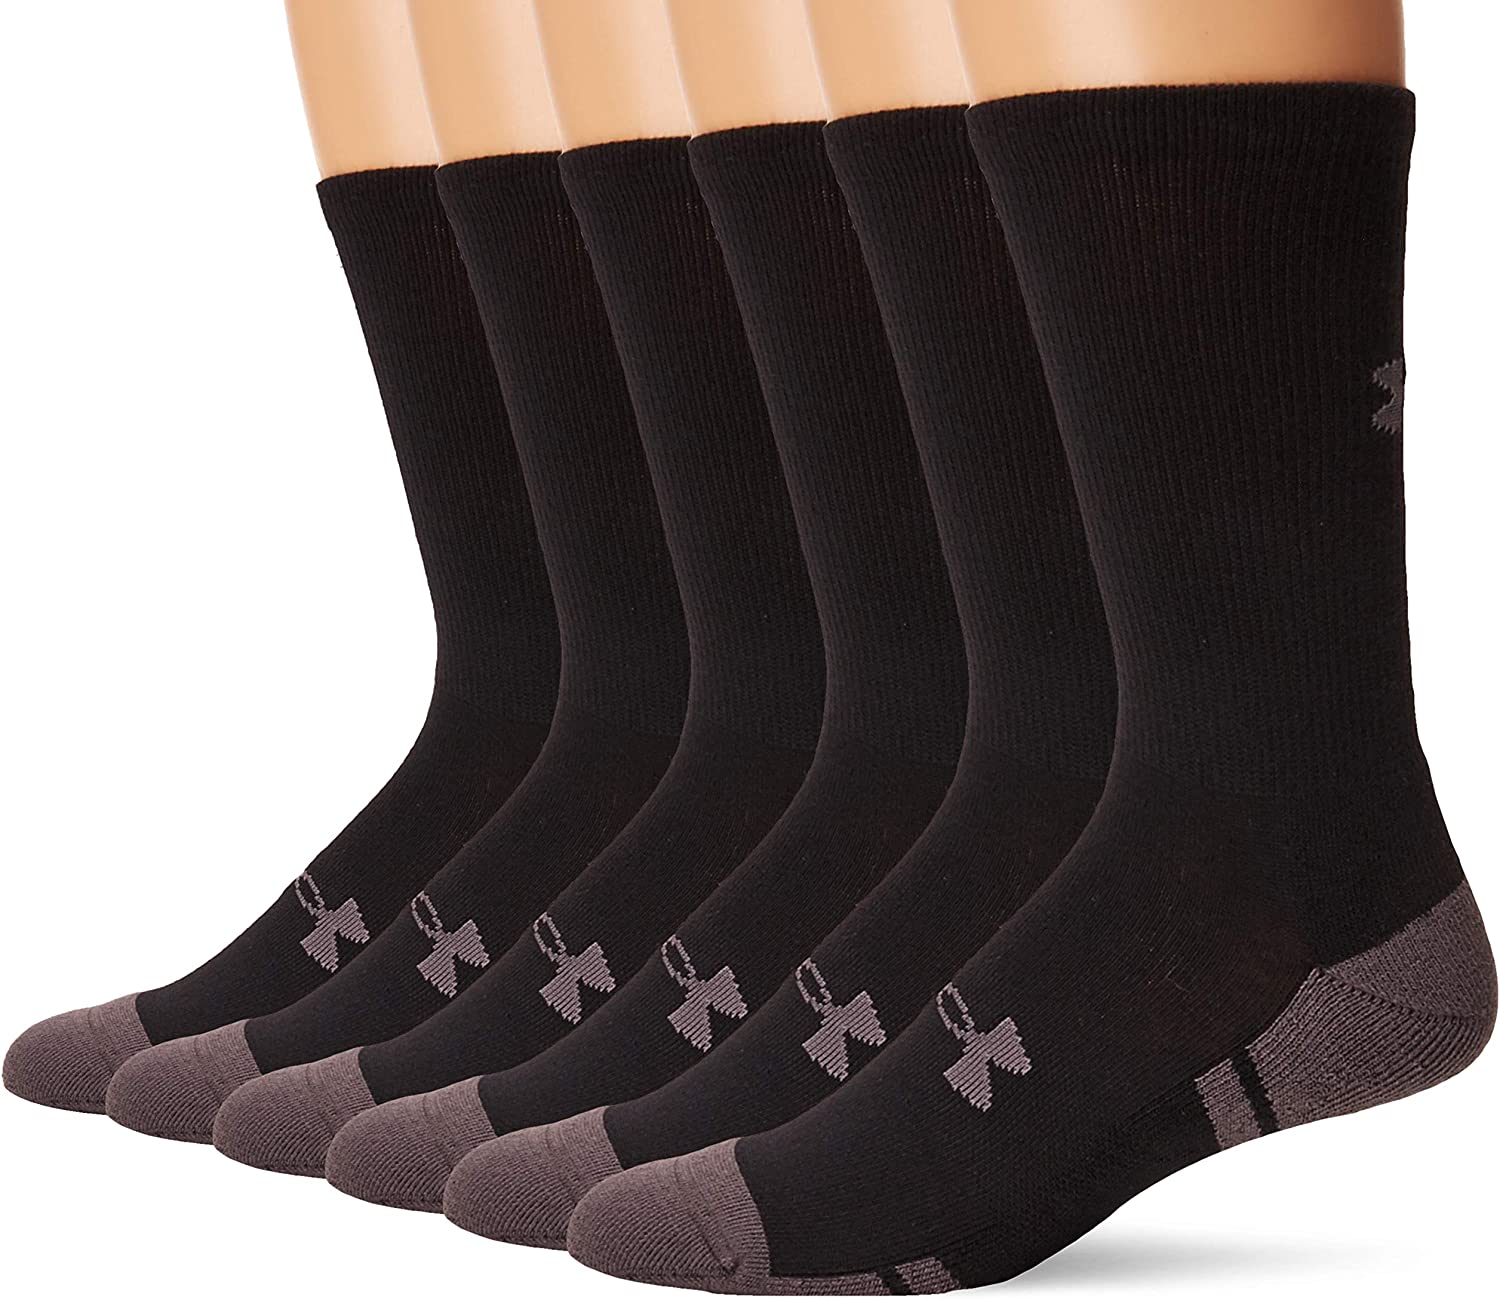 Under Armour Adult Resistor 3.0 Crew Socks, 6-Pairs: Sports & Outdoors